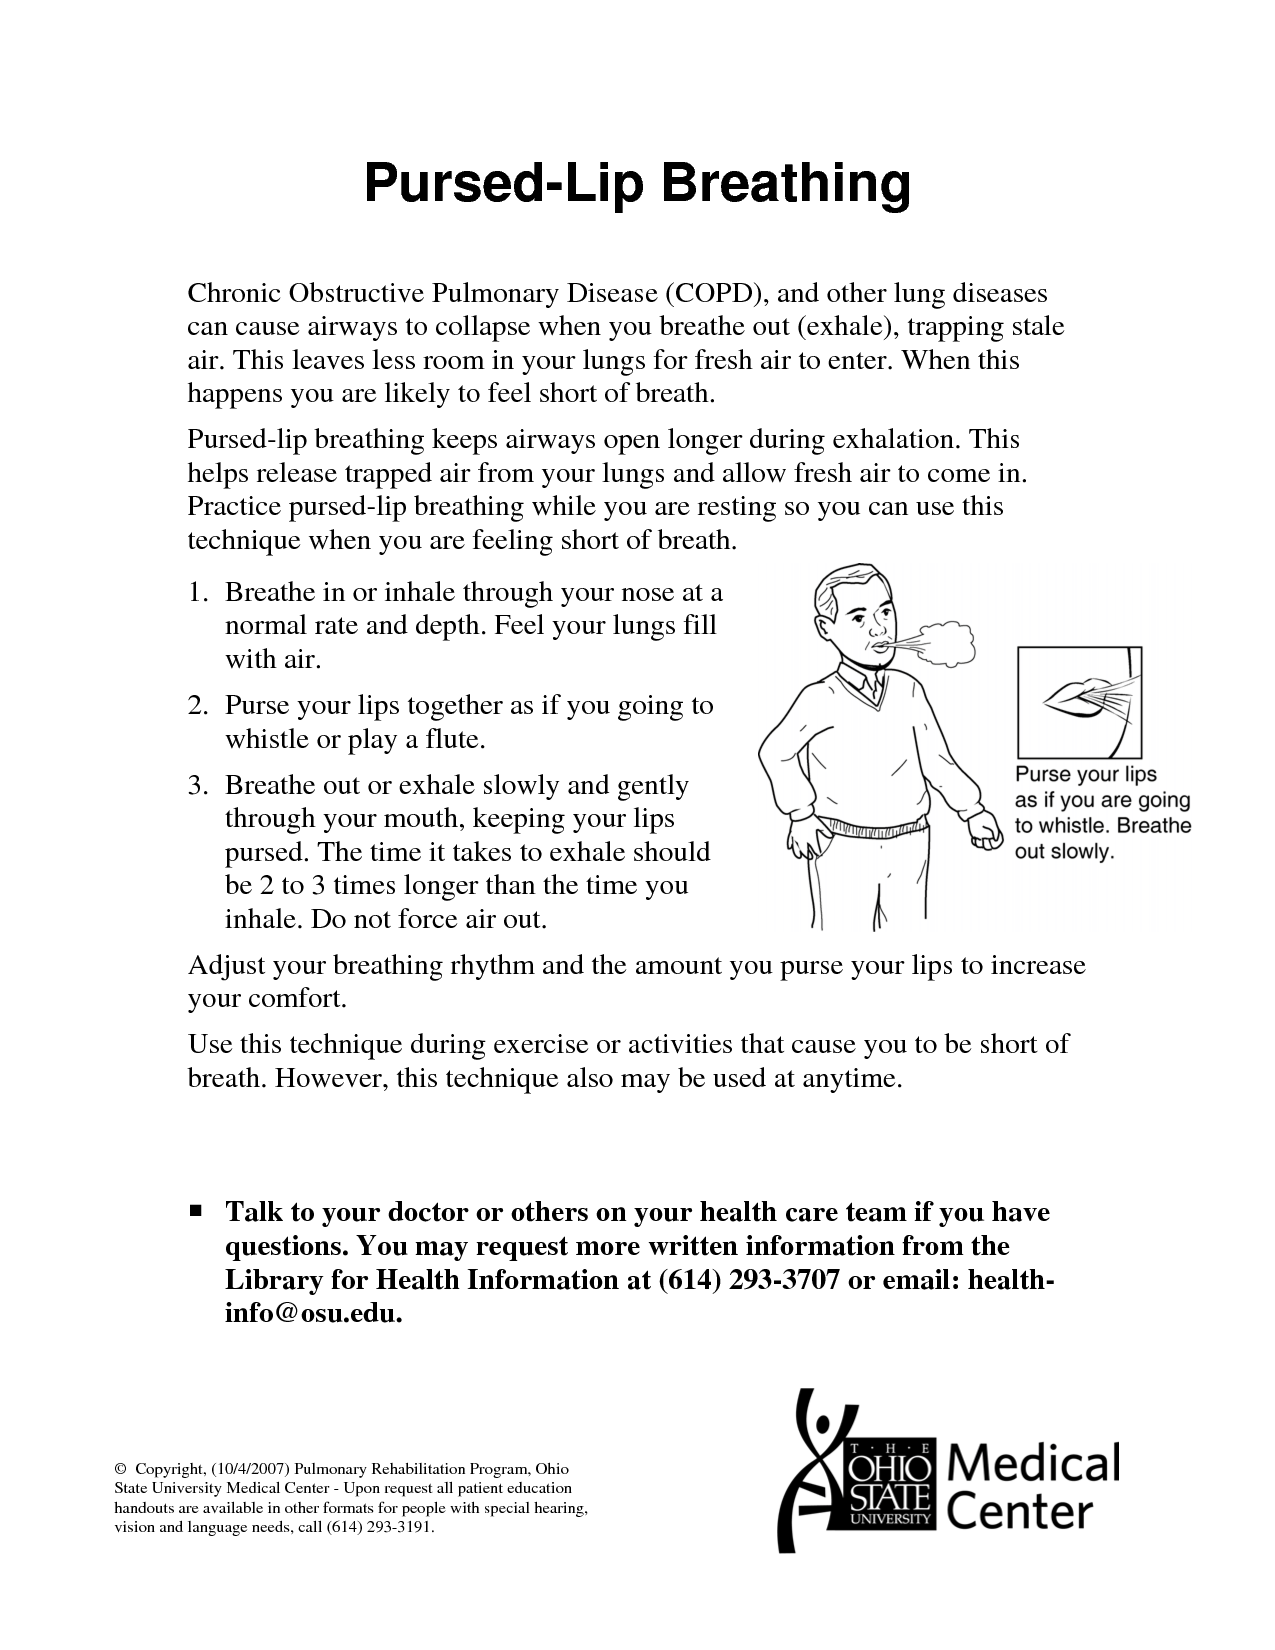 Pursed Lip Breathing Handout | www.imgkid.com - The Image ...